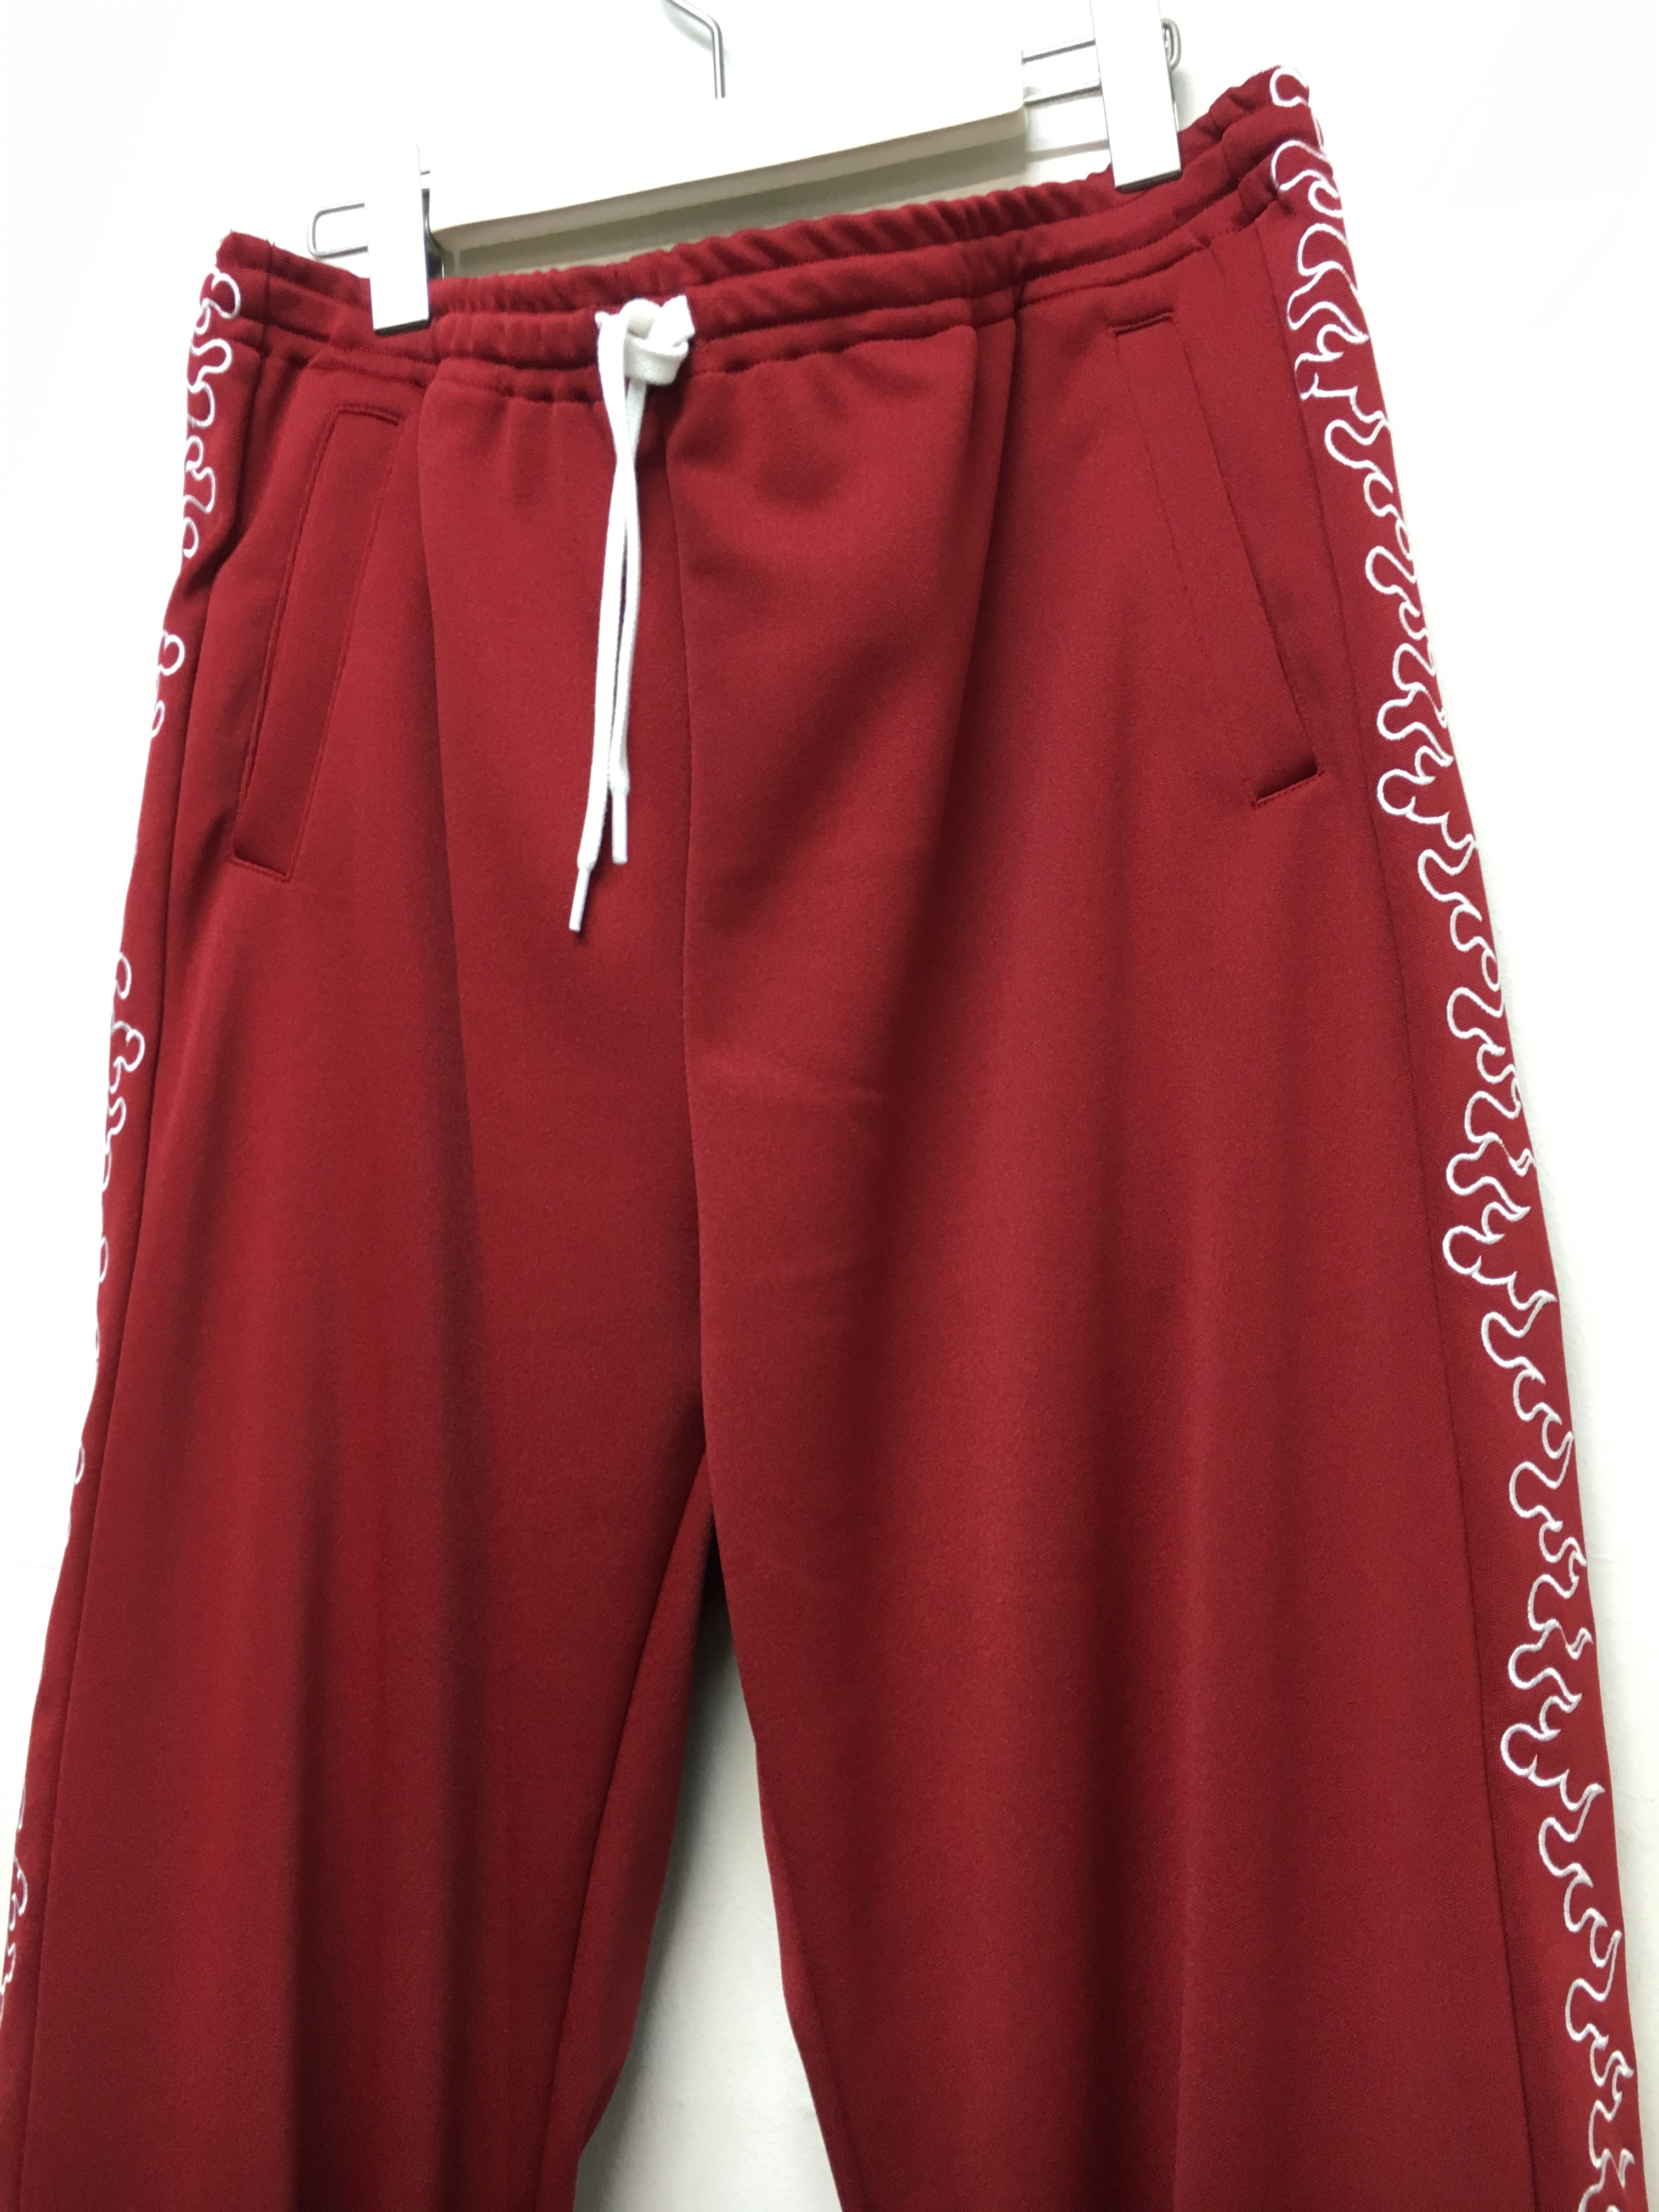 SKIN / FIRE TRACK PANTS -red - 画像2